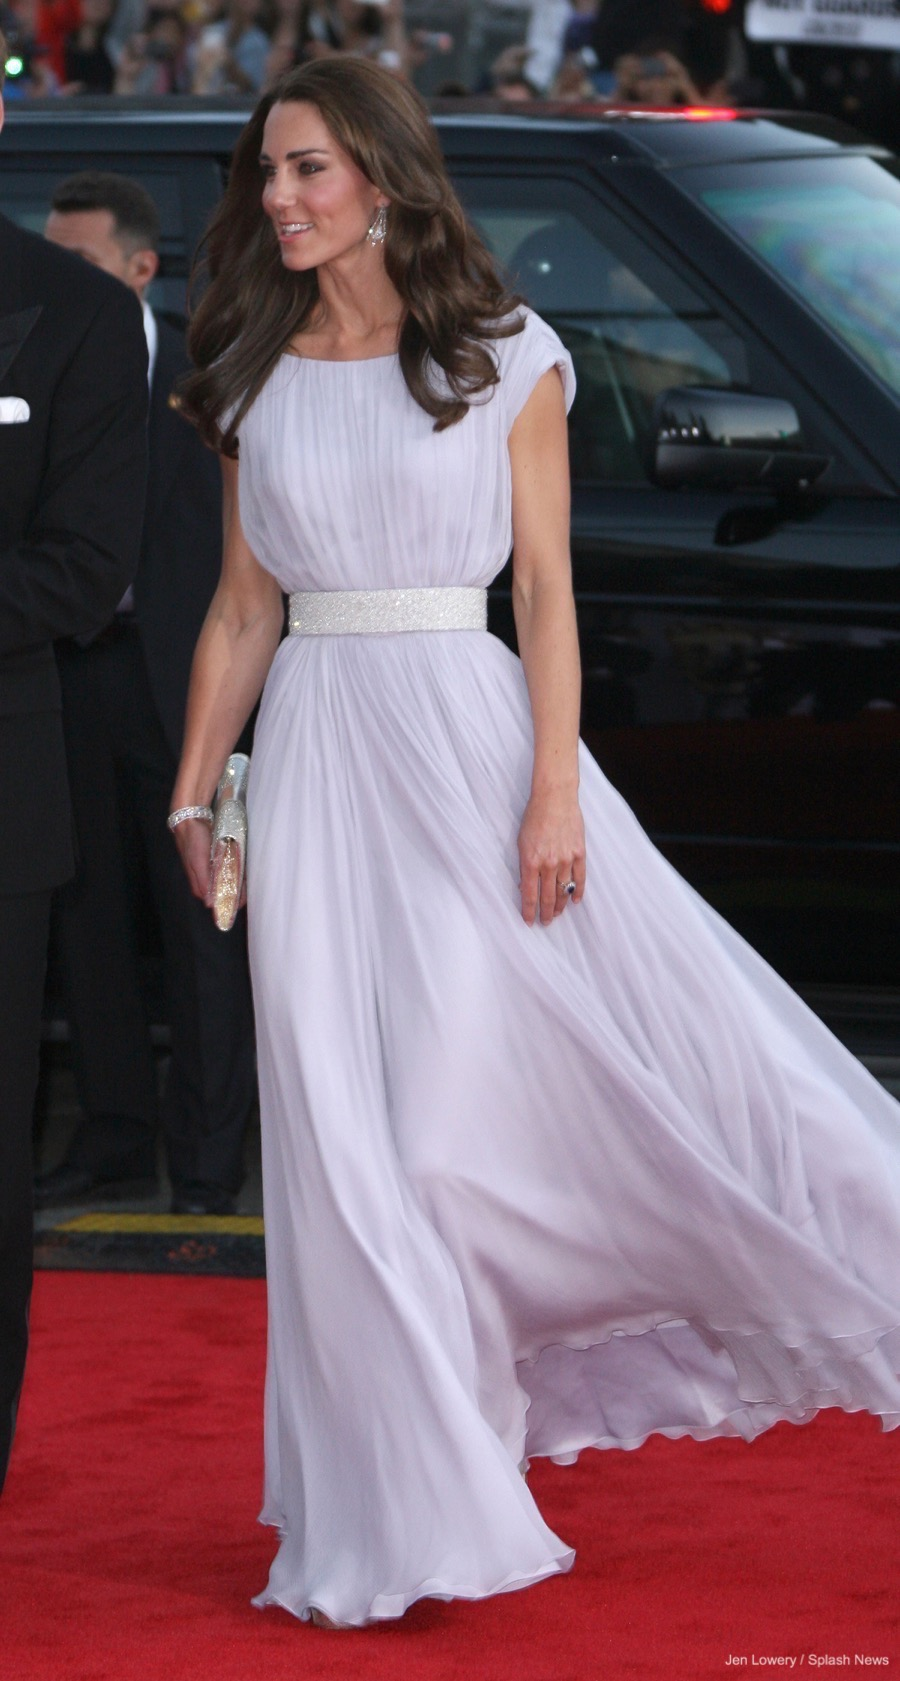 Kate and Will Stun Crowds at BAFTA Event in LA · Kate Middleton ...